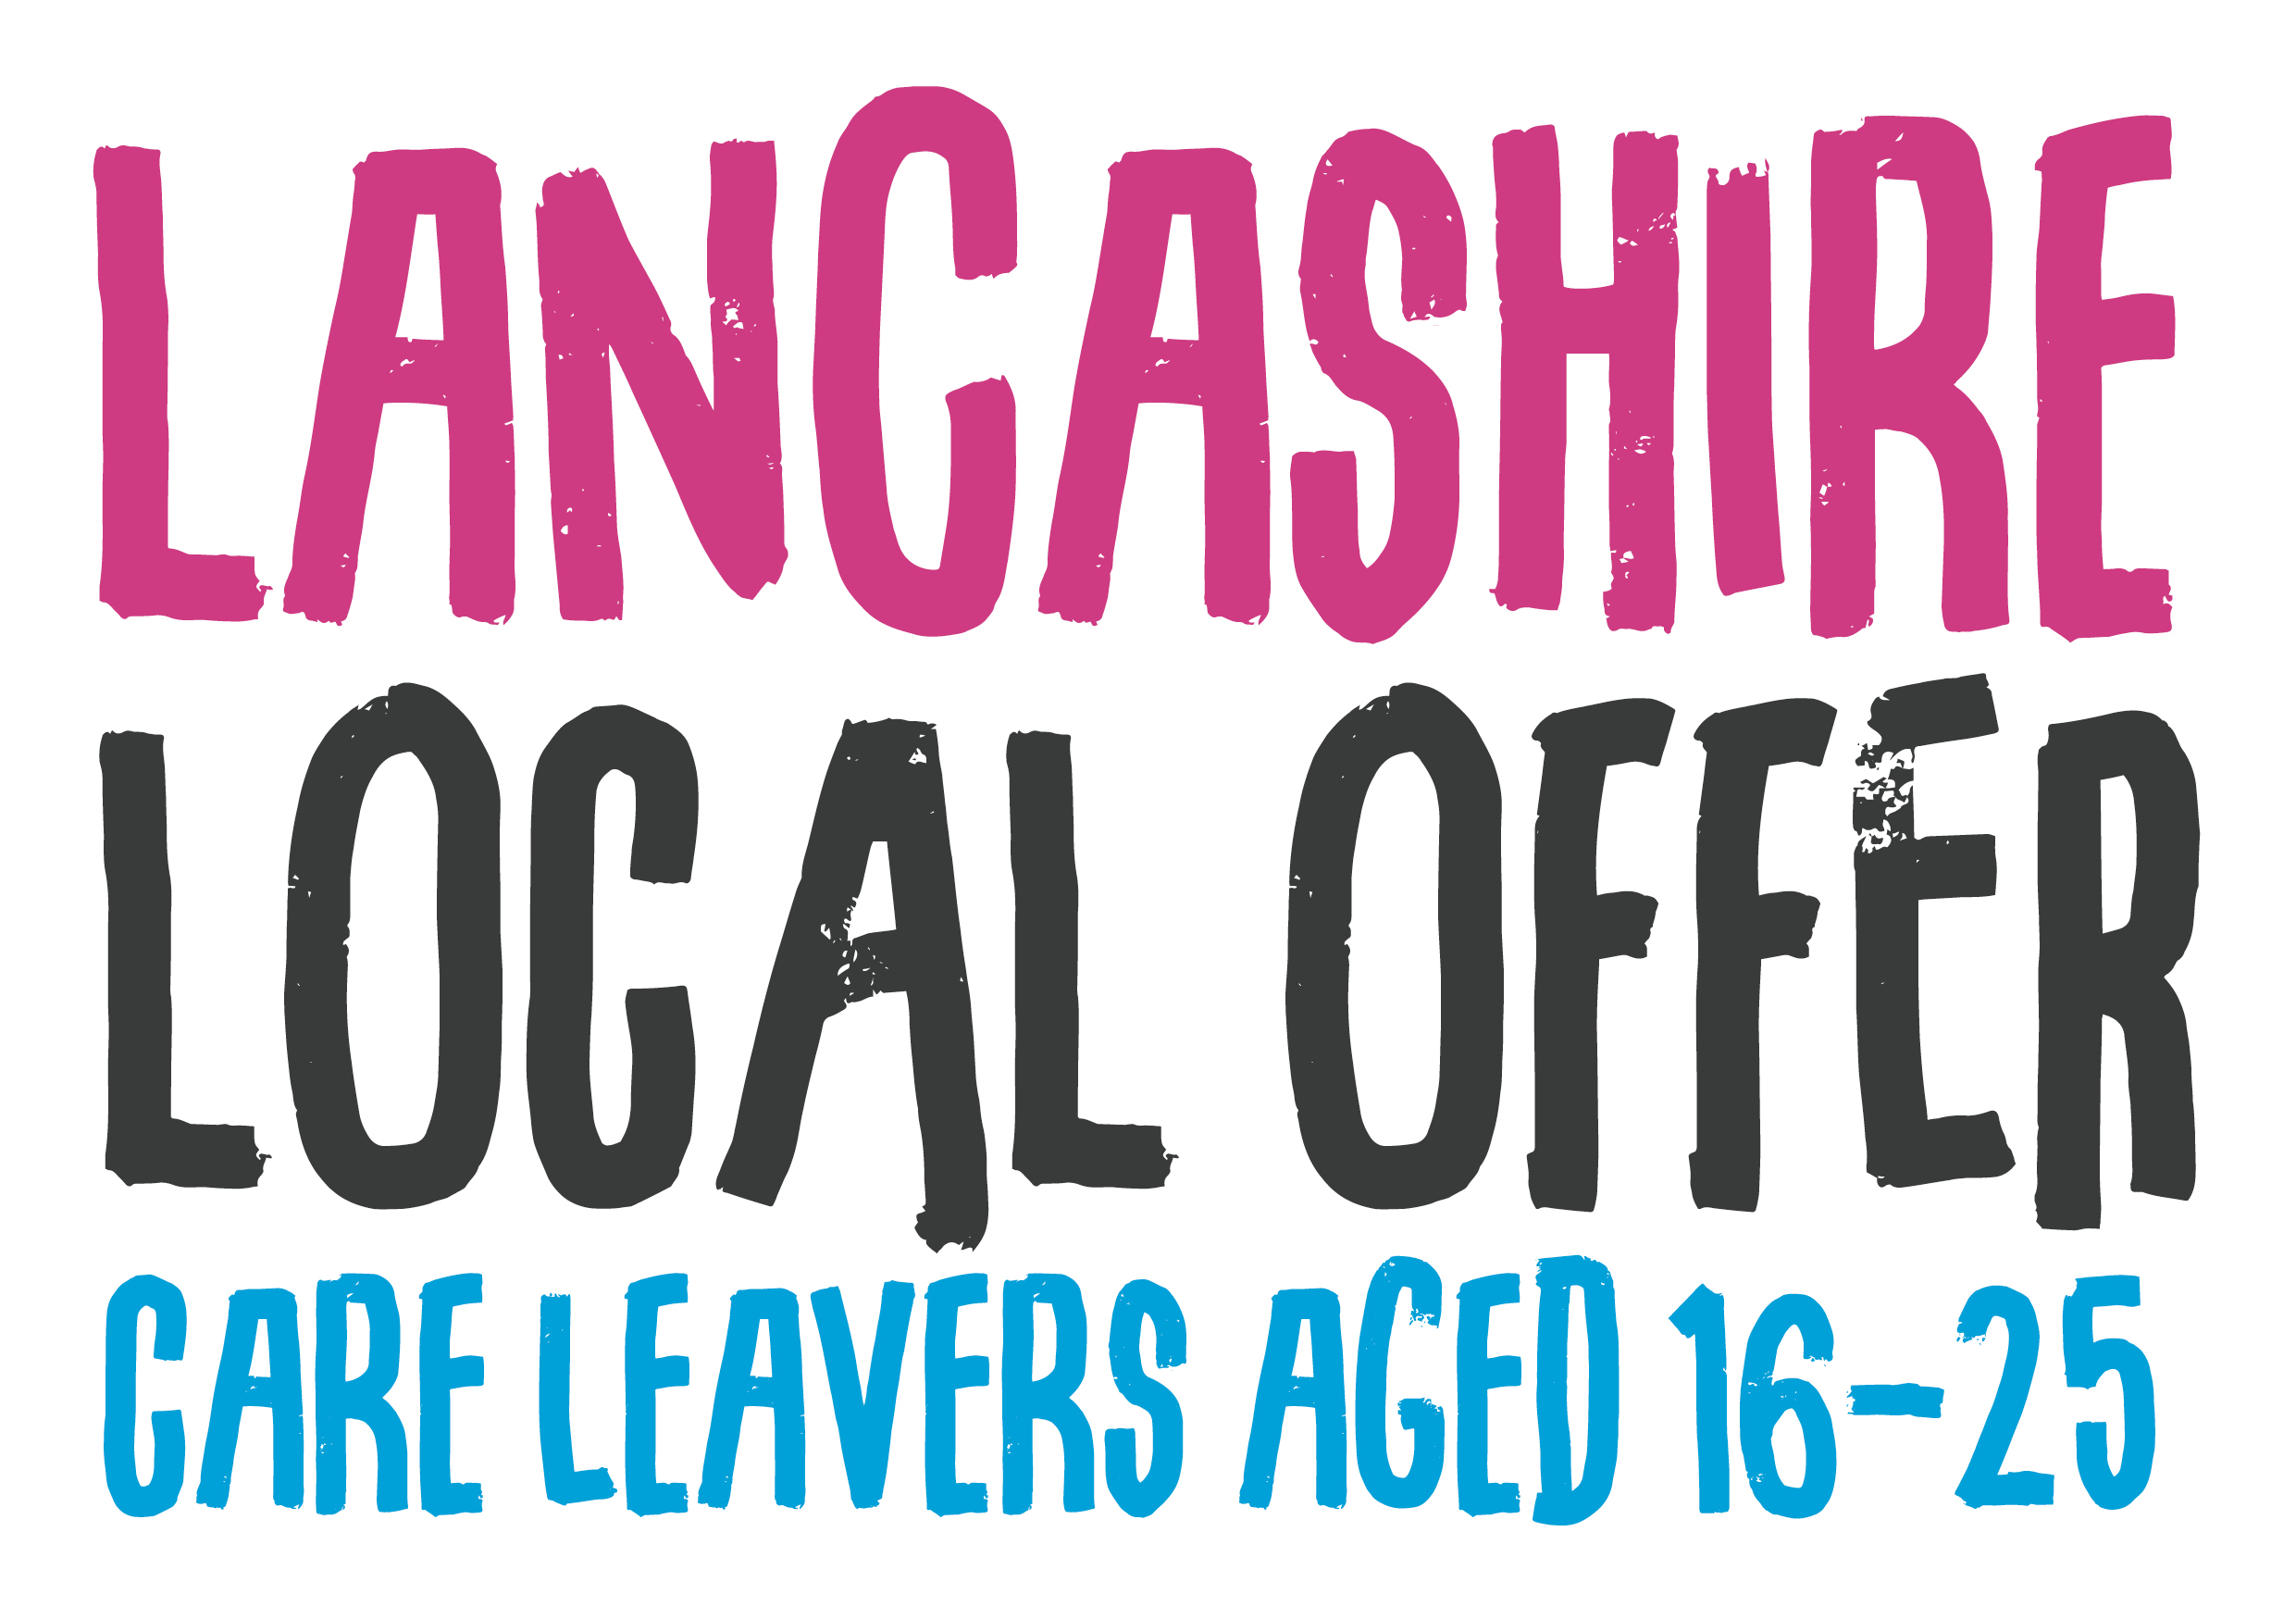 Care leavers local offer